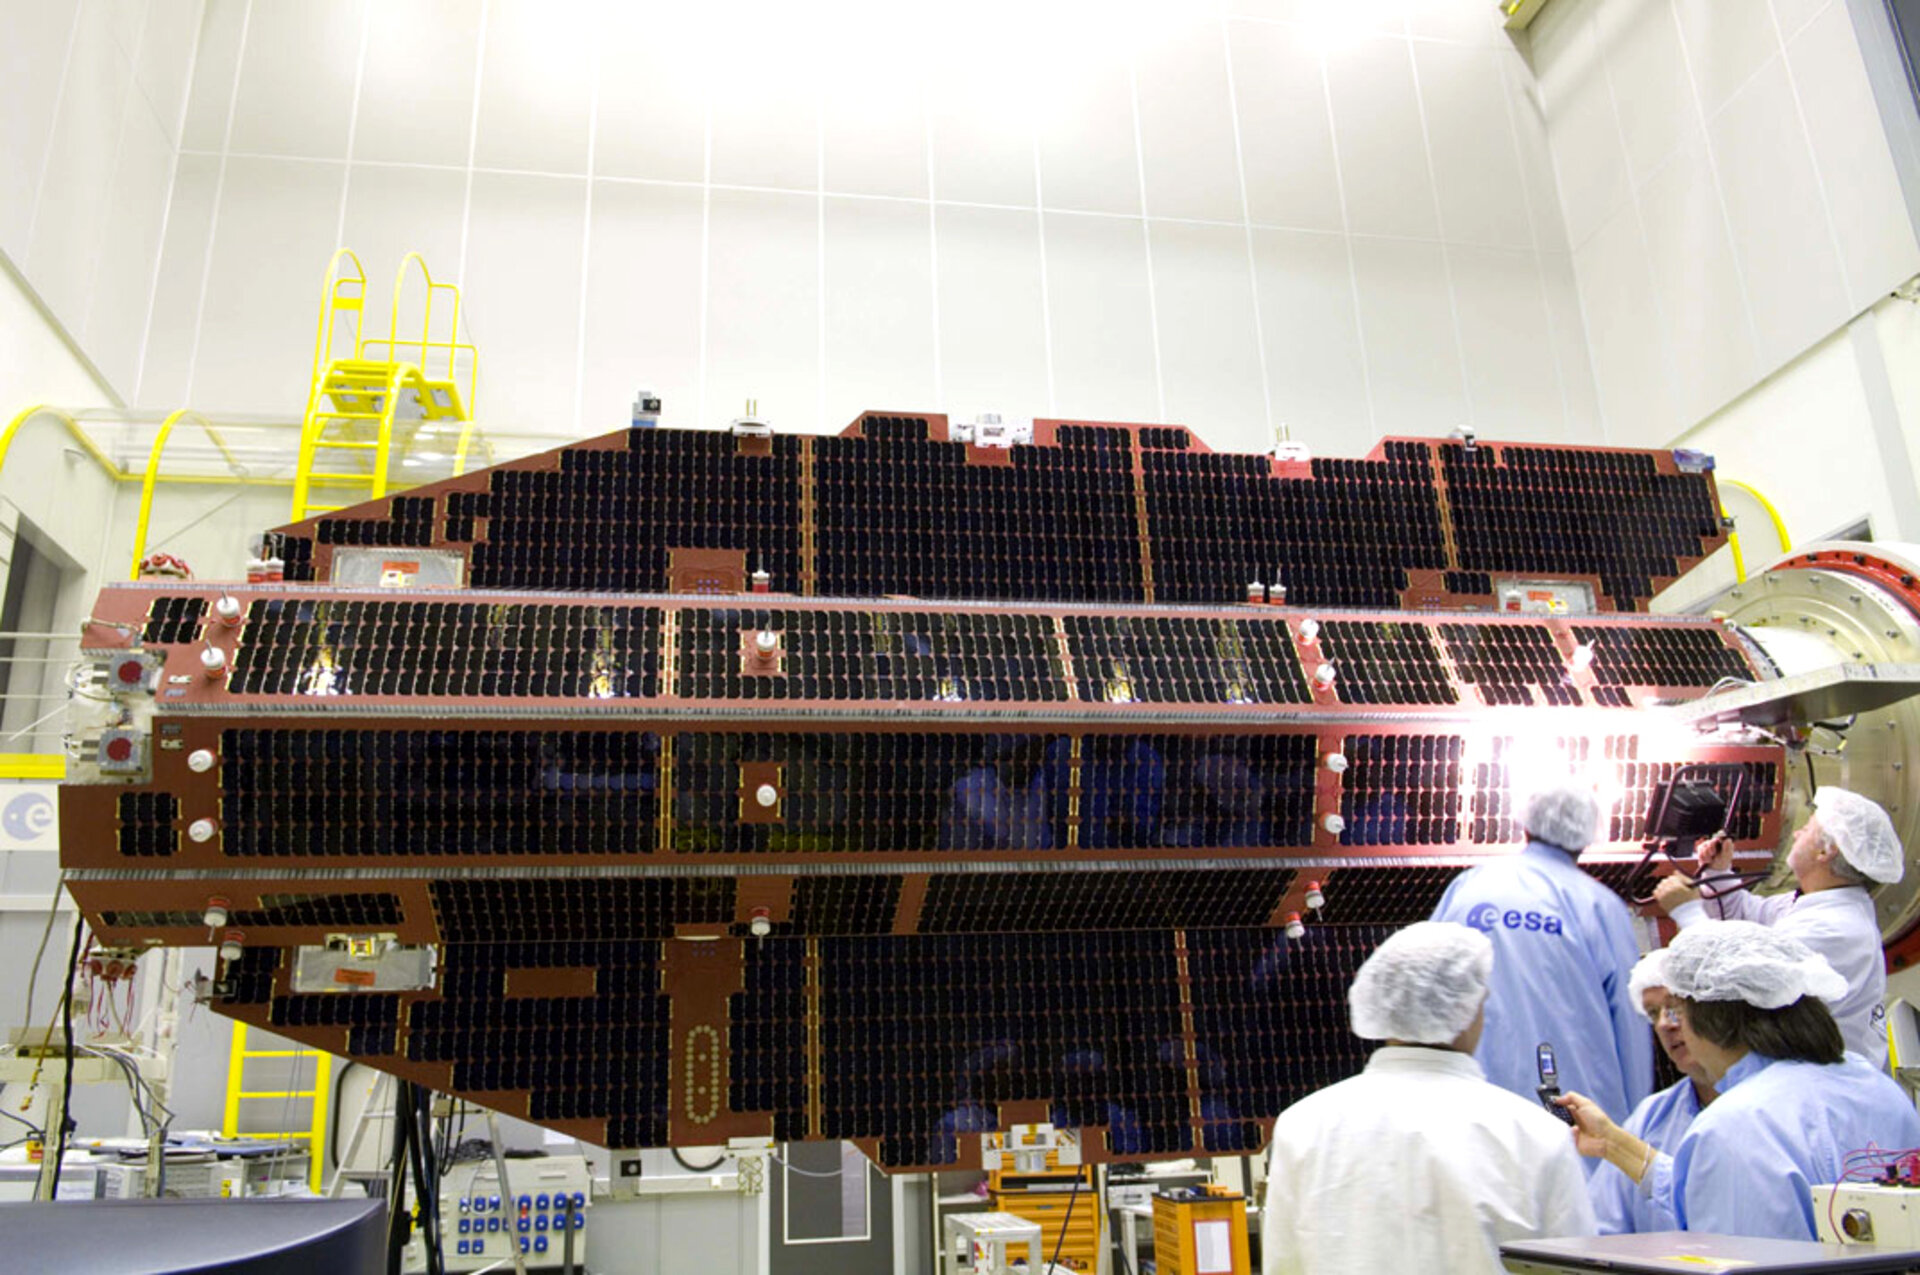 GOCE in ESA's test facilities